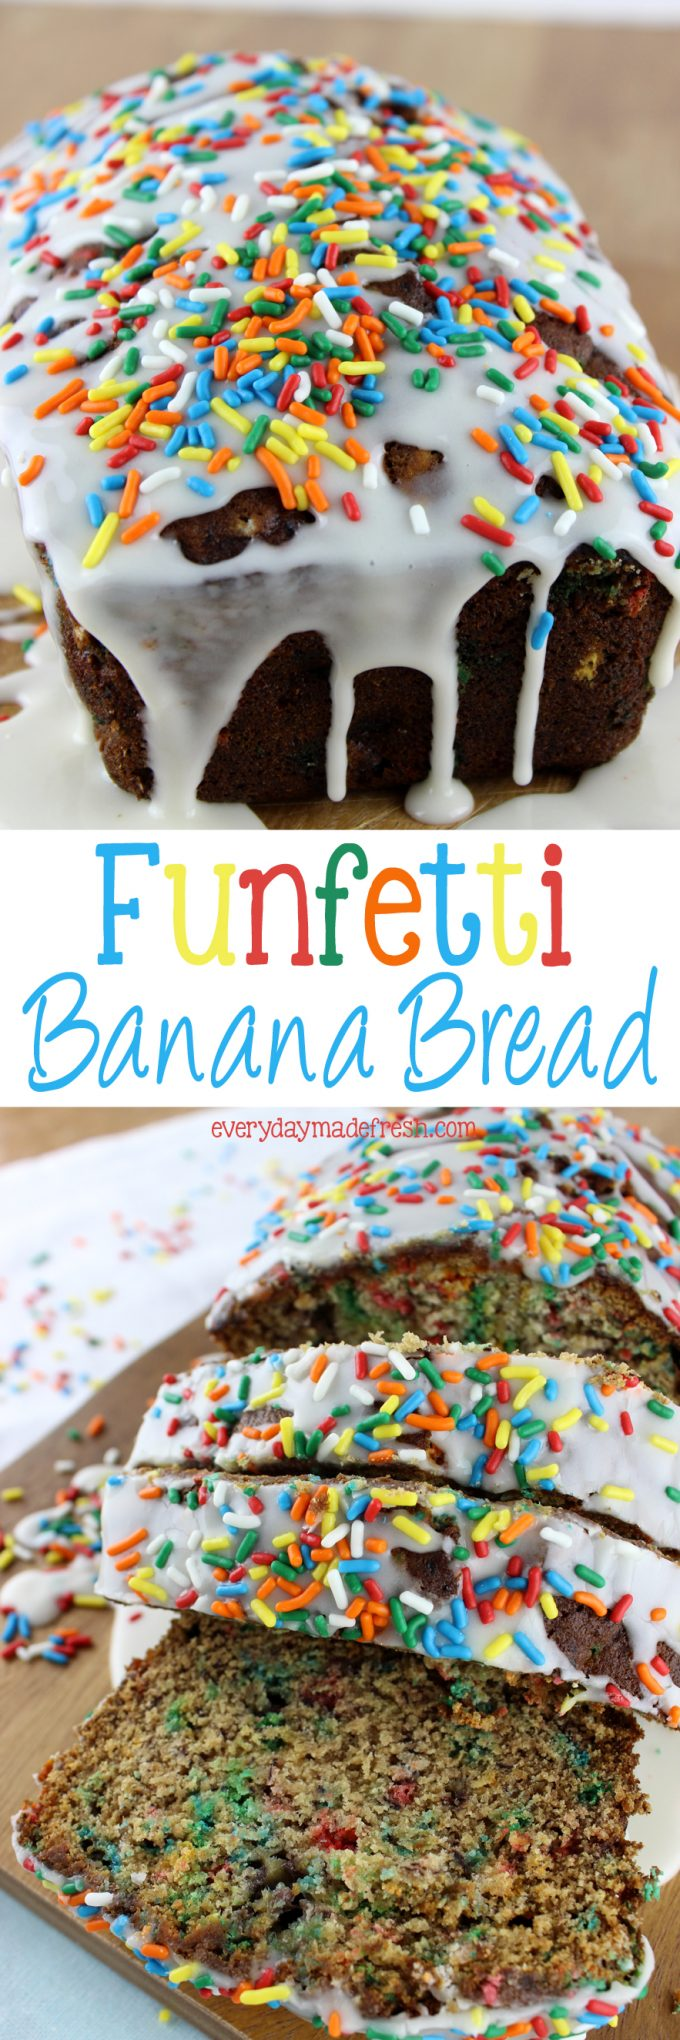 Sprinkles have struck again! Add a little fun to your day with this Funfetti Banana Bread! It's the fun cousin to regular banana bread. | EverydayMadeFresh.com